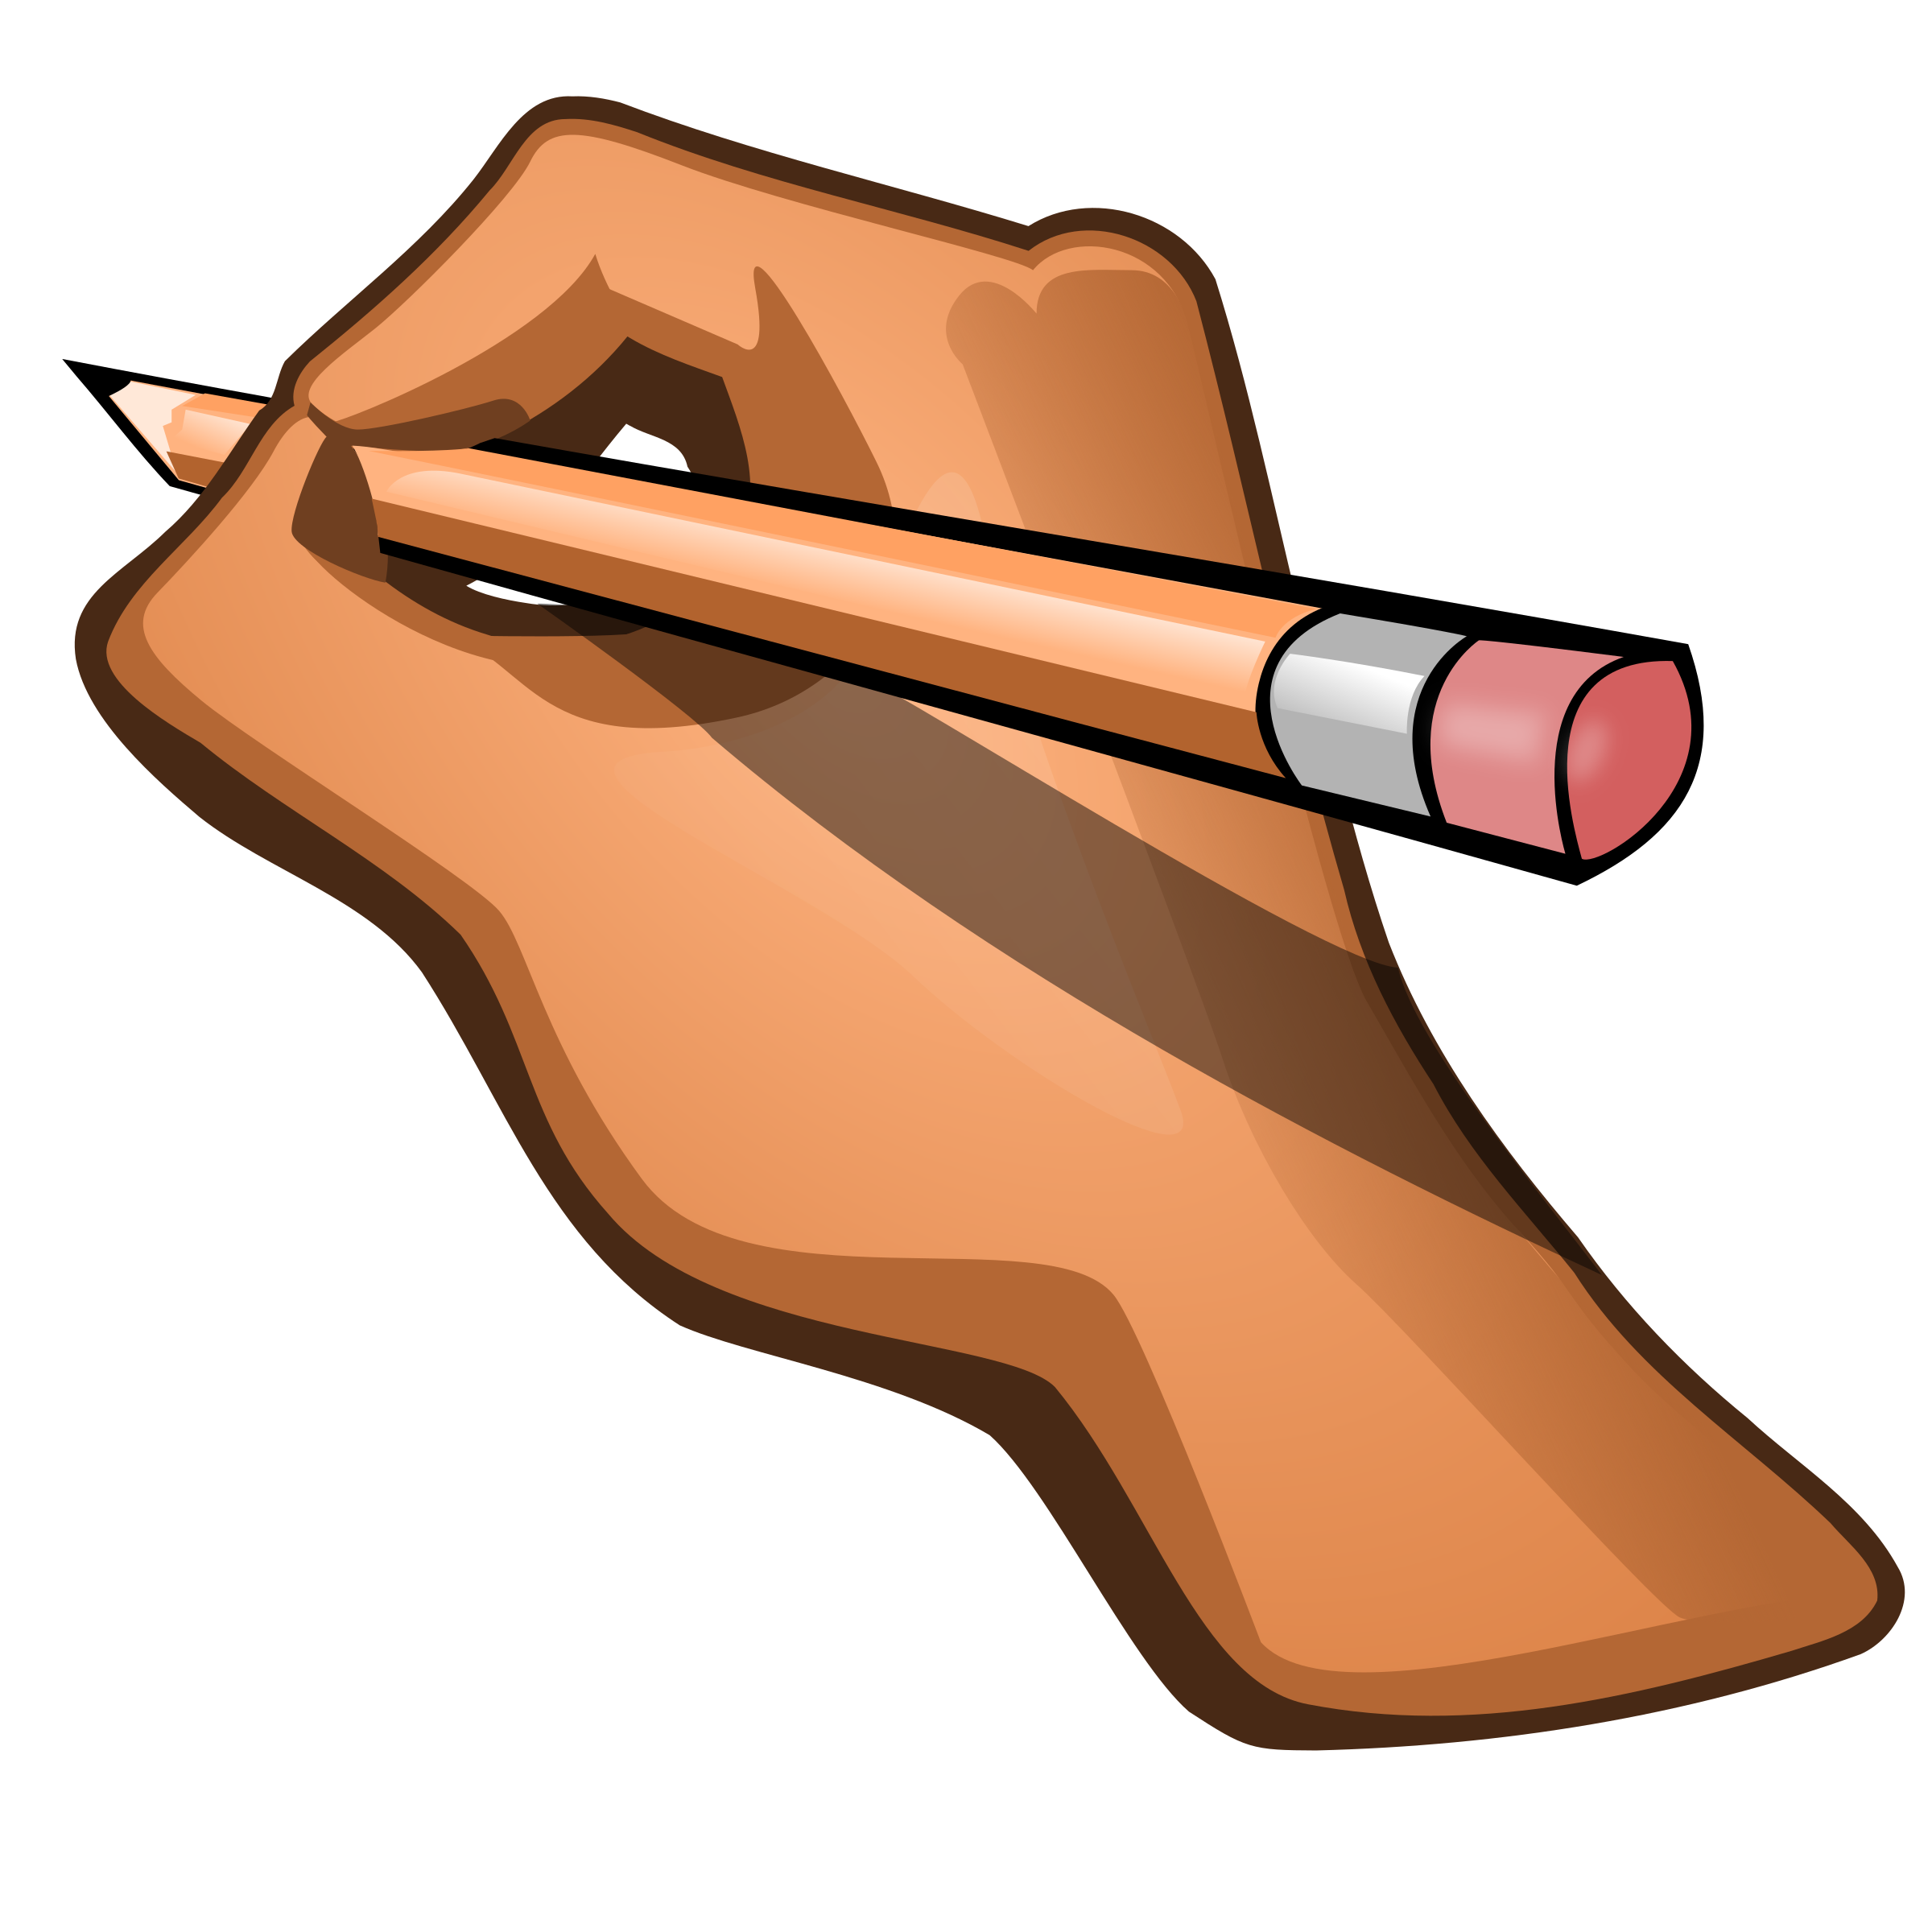 royalty free library Edit hand pencil big. Holding clipart